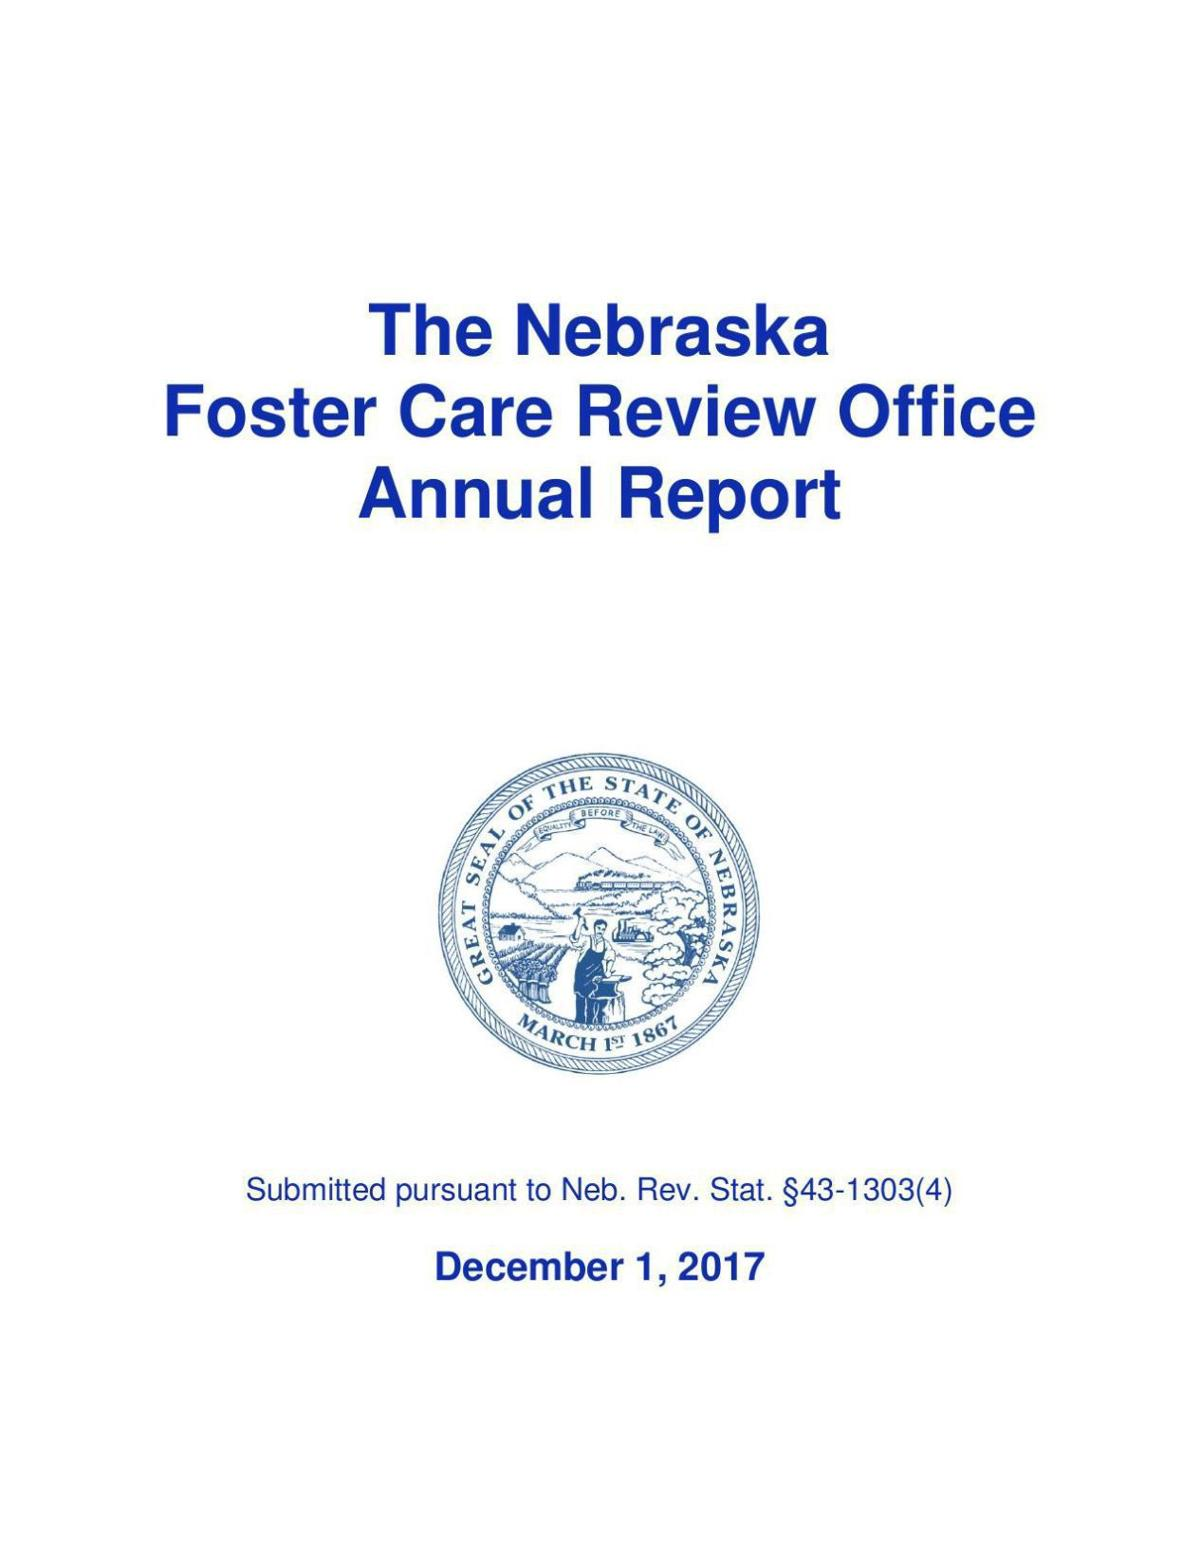 Nebraska Foster Care Review Office Annual Report